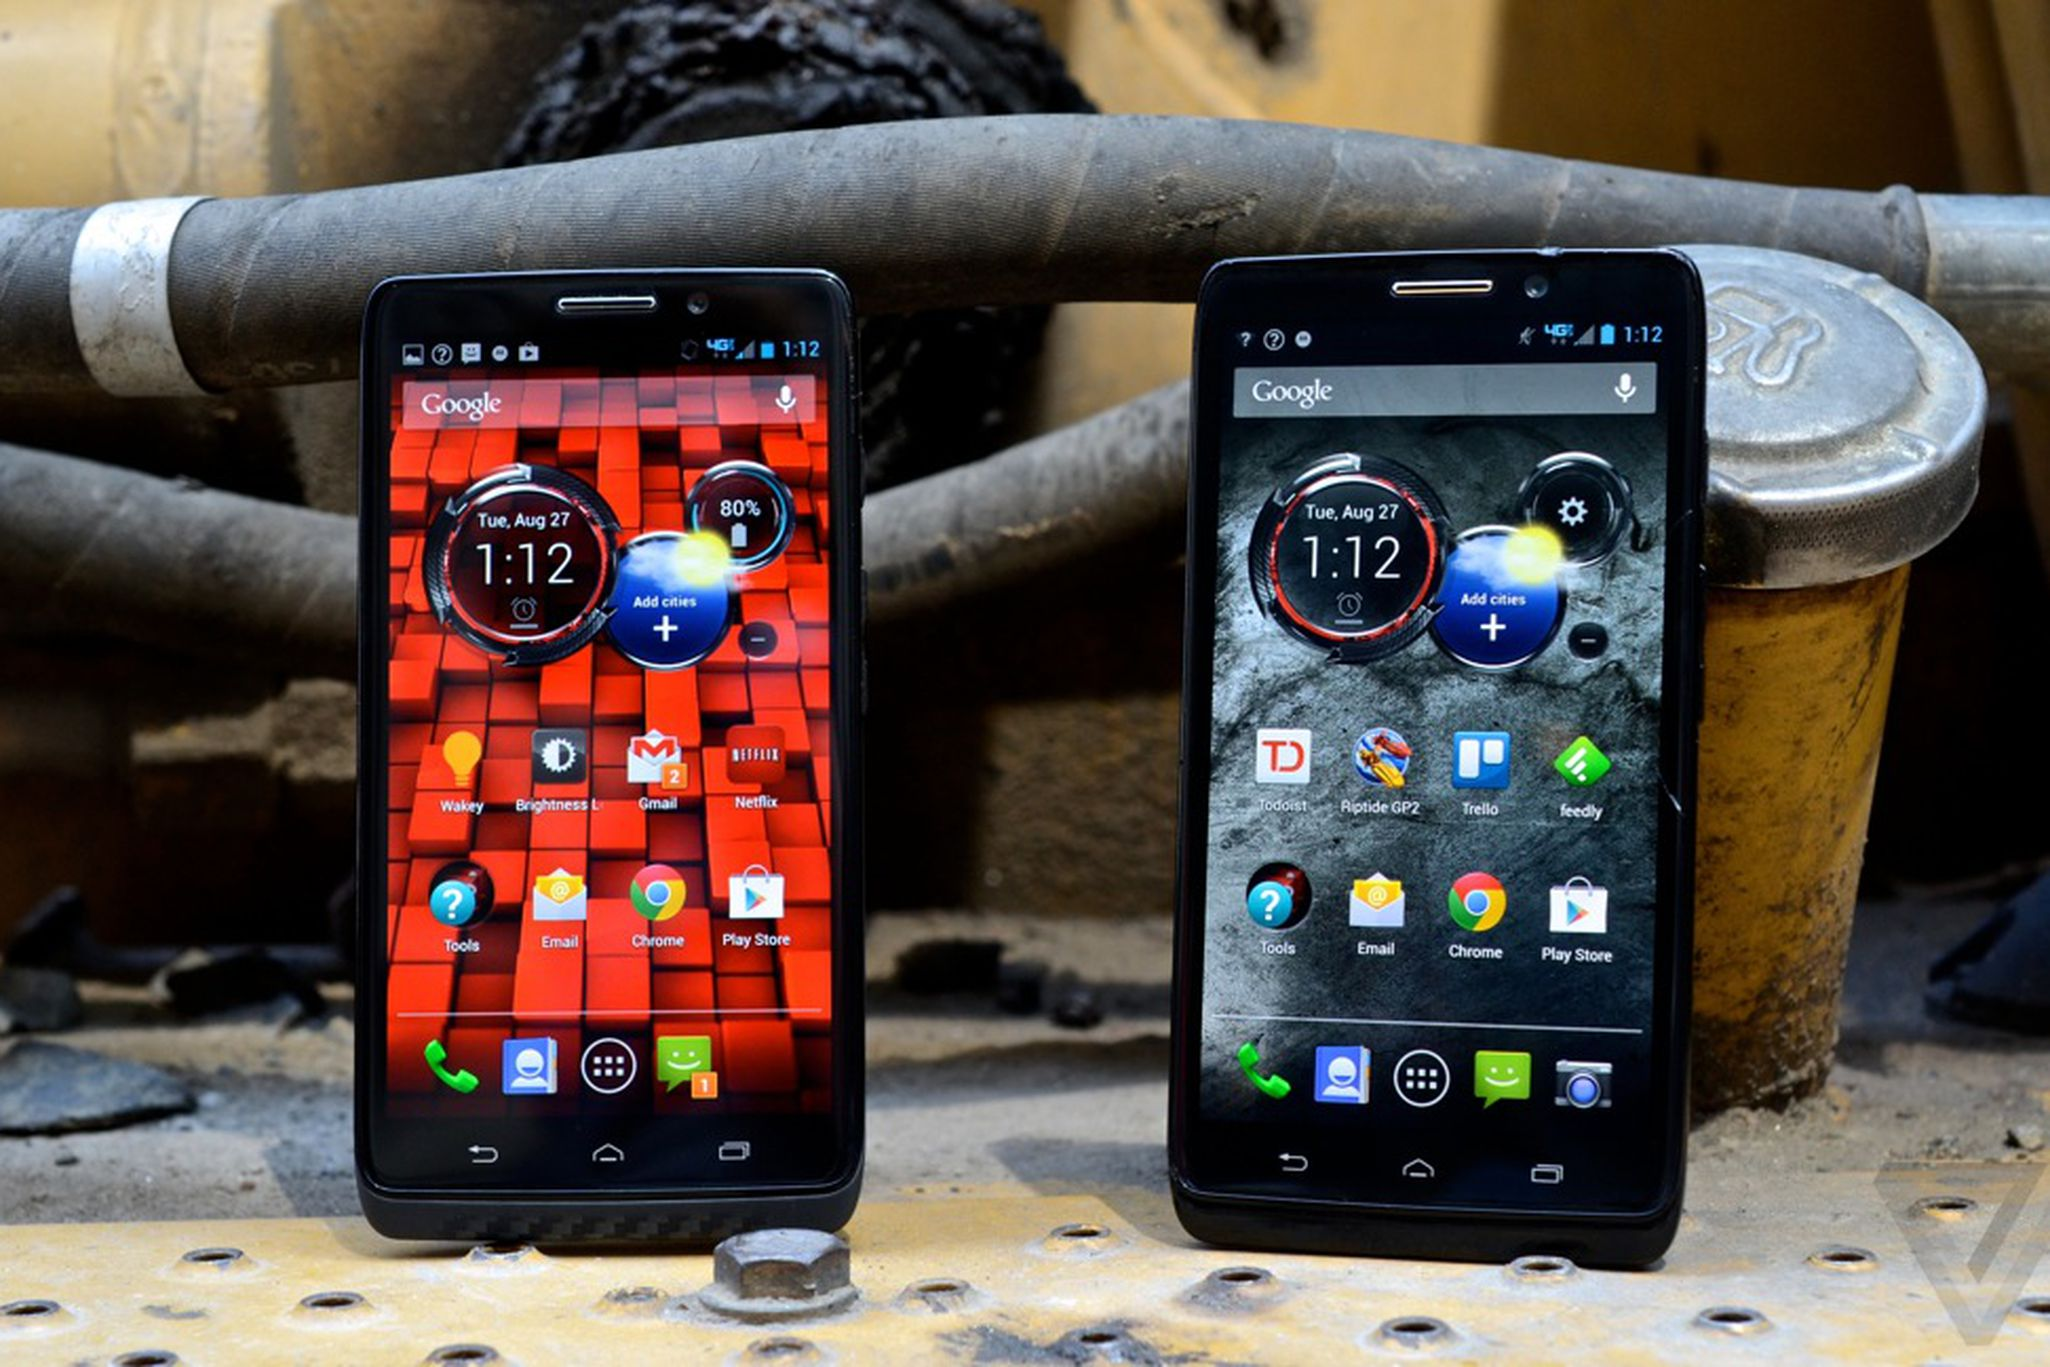 Motorola Droid Ultra and Droid Maxx review | The Verge